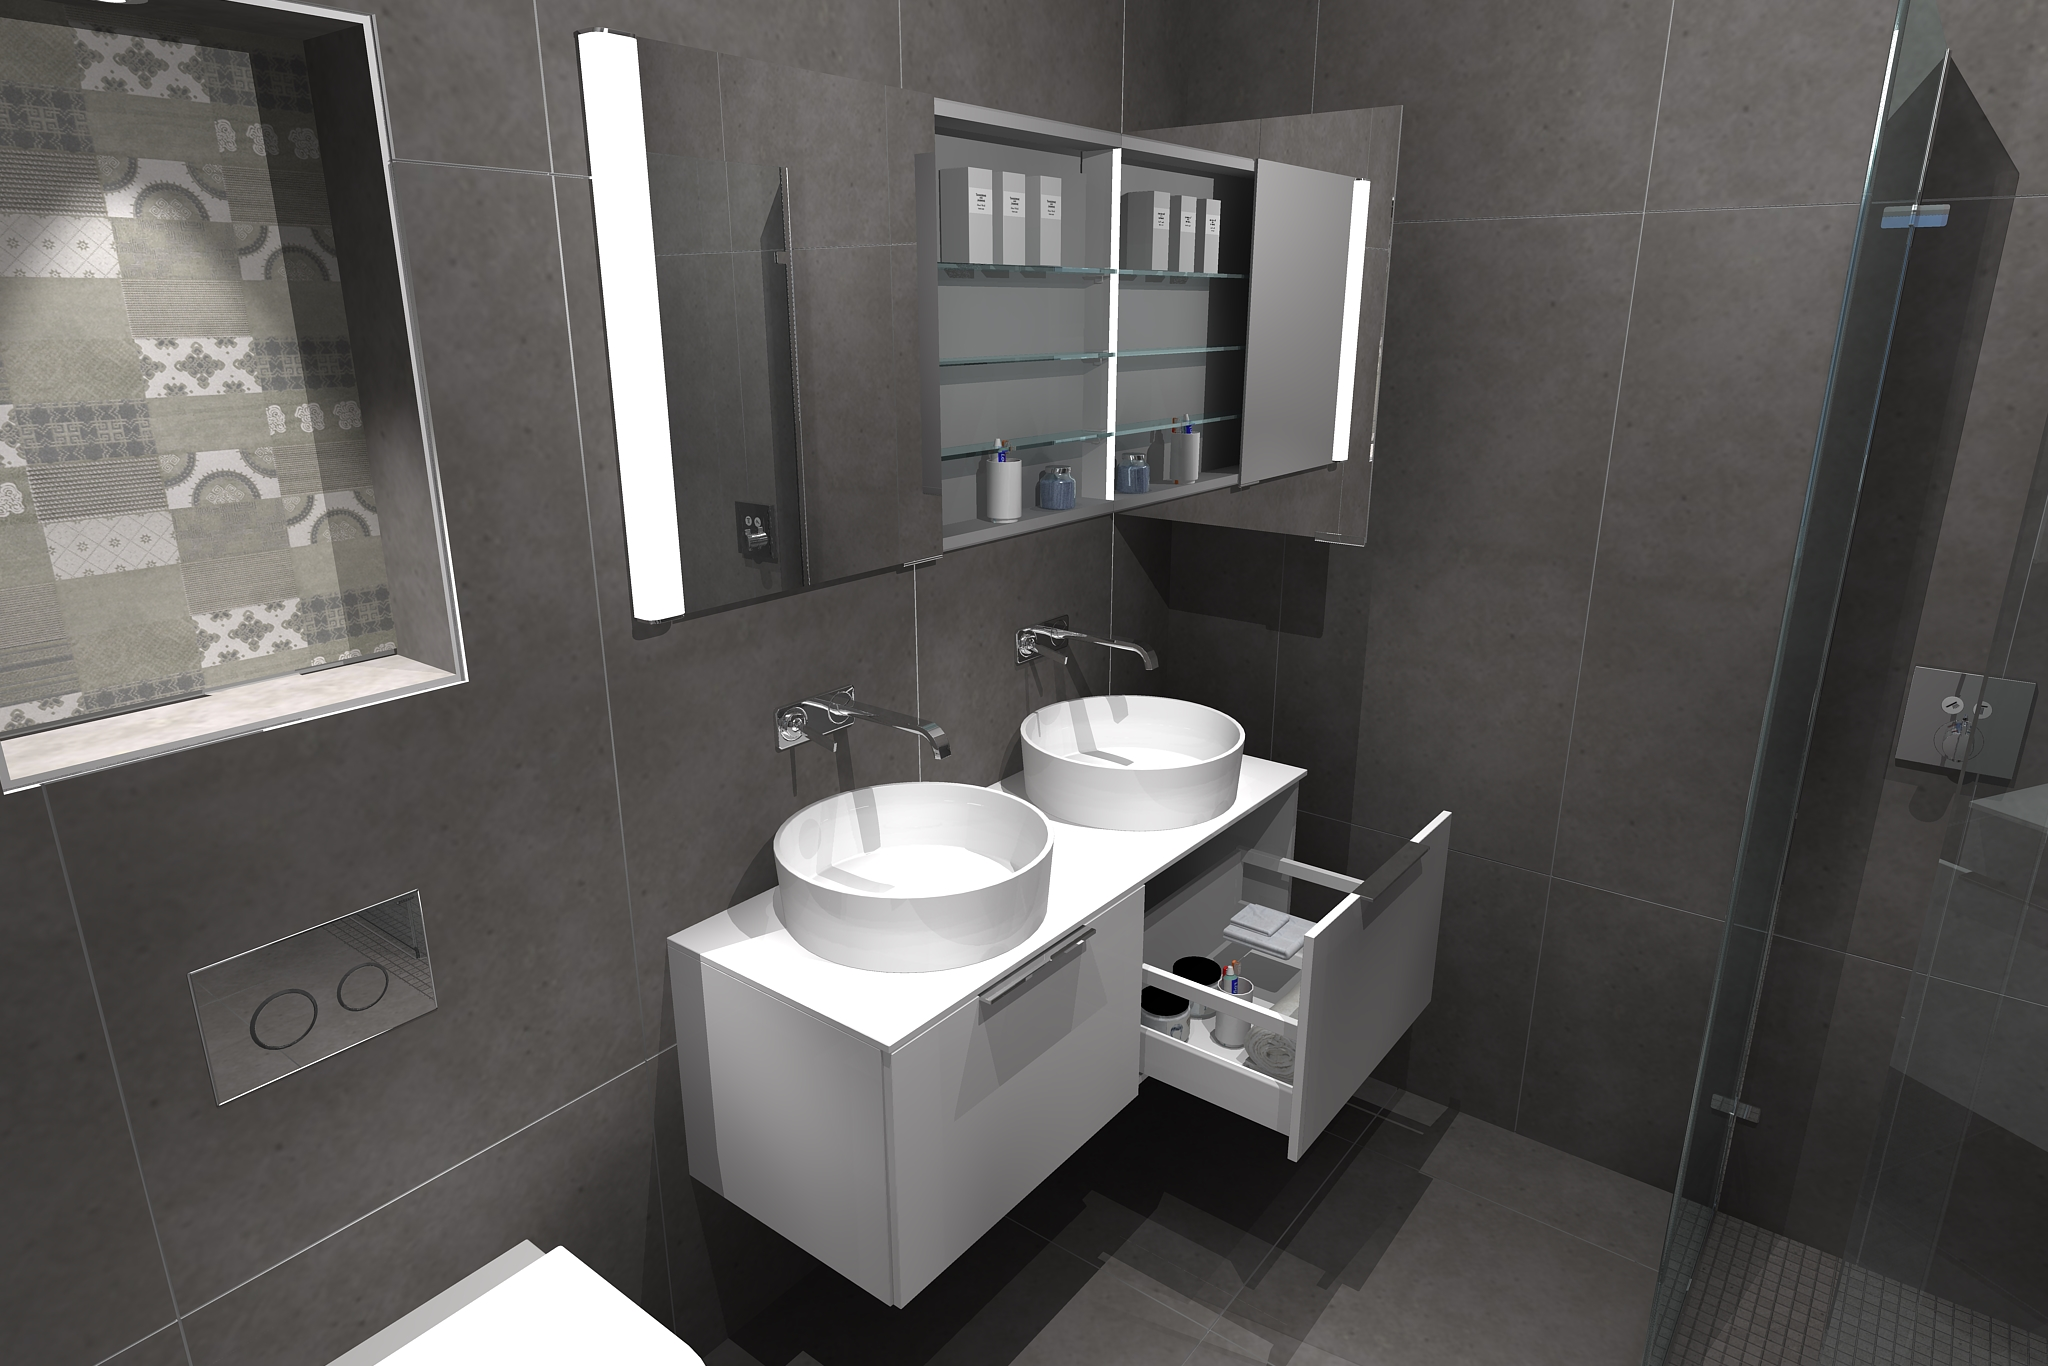 https://sykesbathrooms.com/wp-content/uploads/2015/11/KANE-MASTER-EN-SUITE-2.jpg